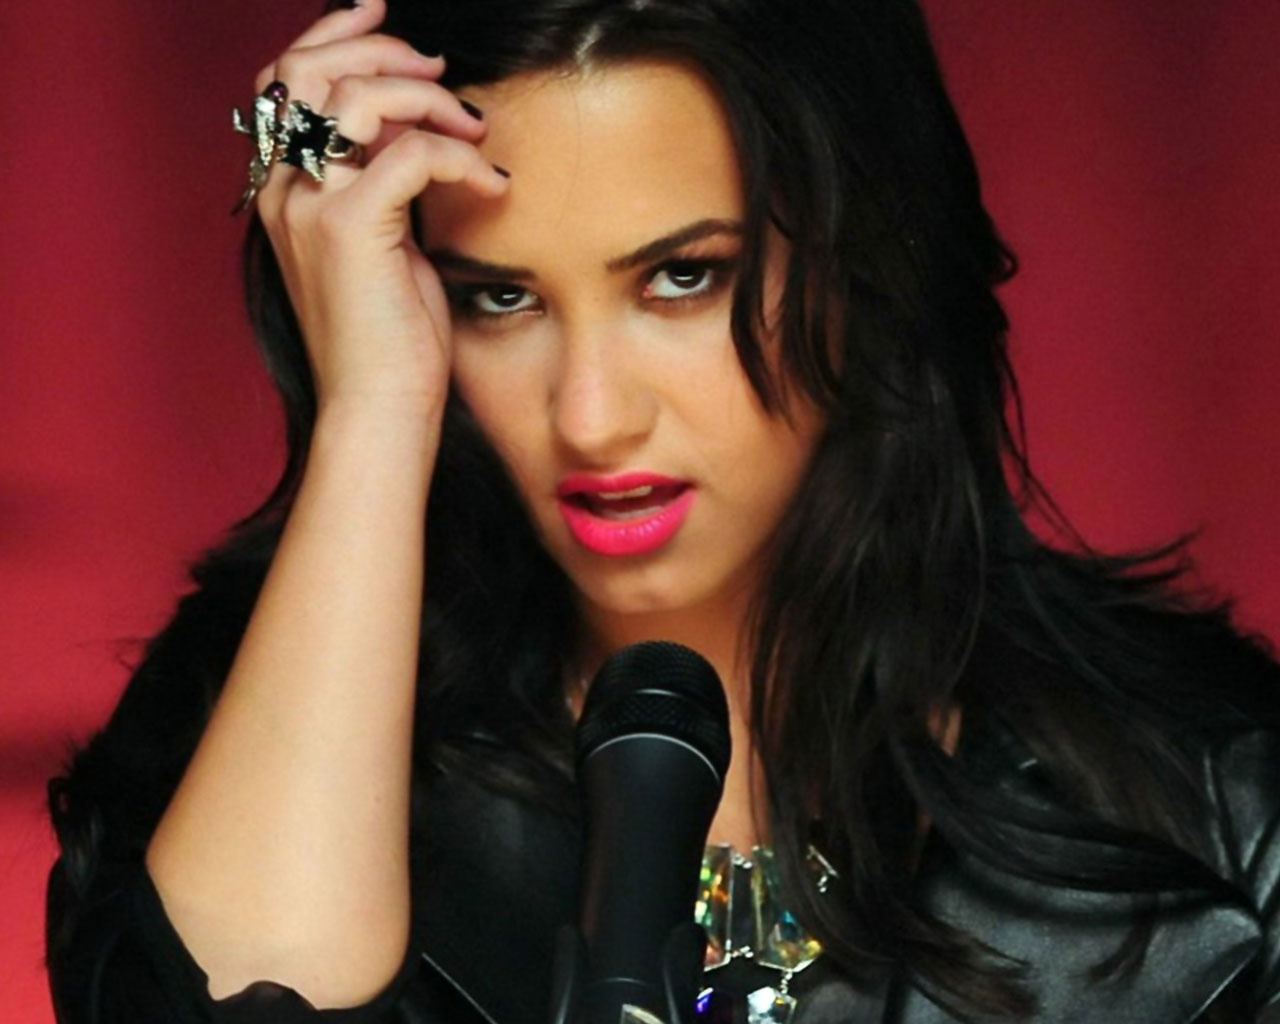 demi lovato wallpapers hd a12